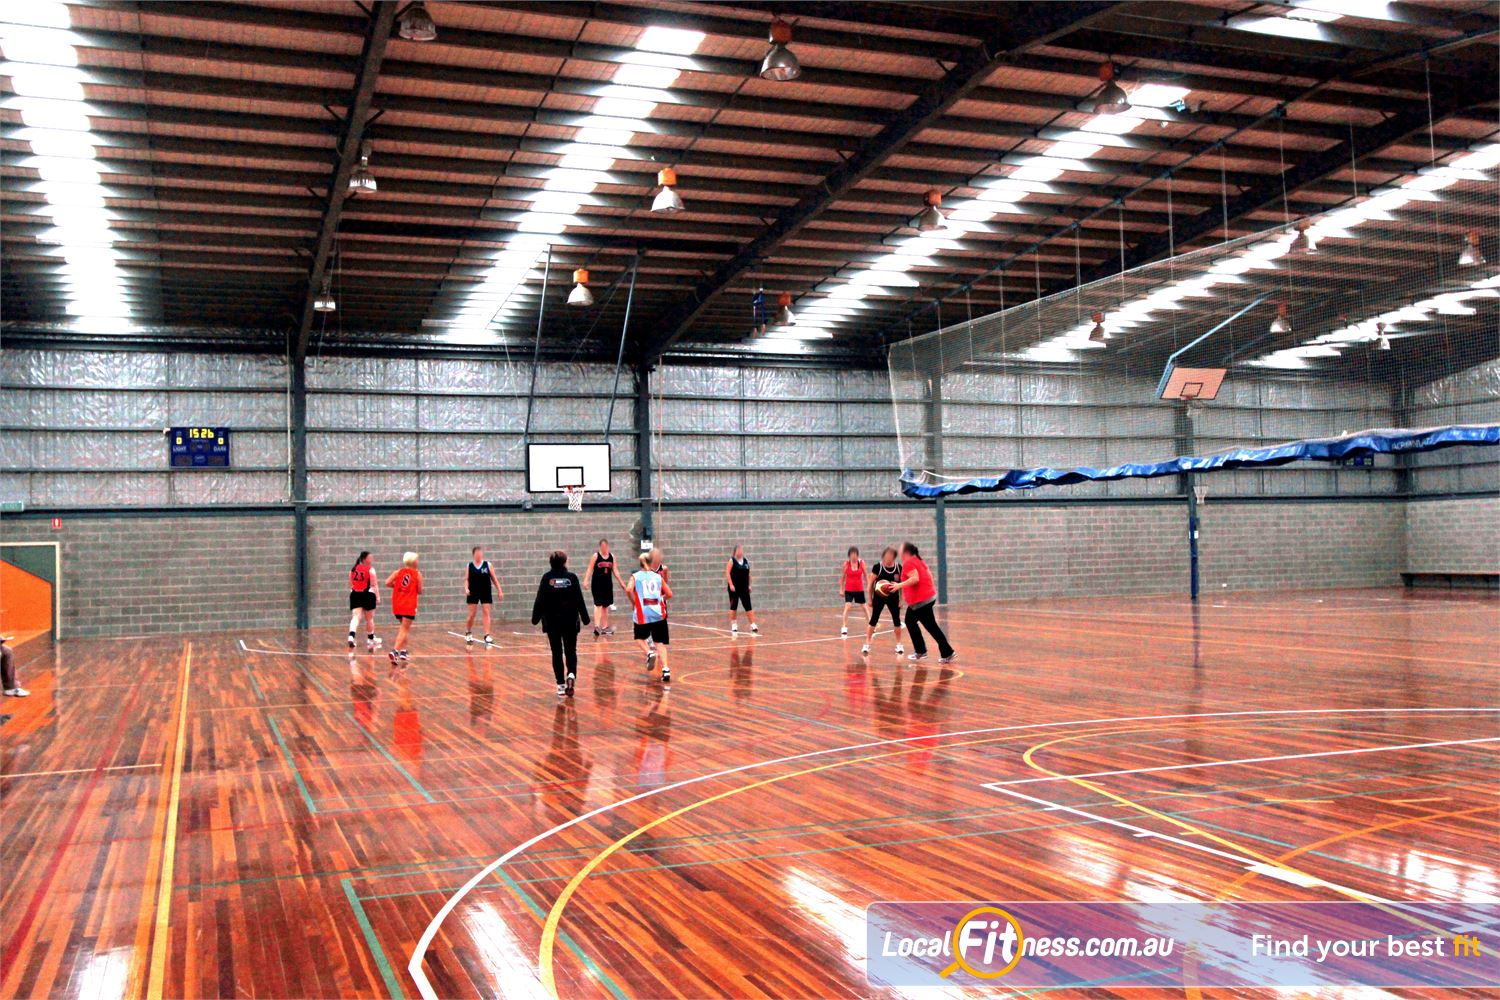 Yarra Recreation Centre Yarra Junction Join our many sporting competitions, including netball, basketball and more.